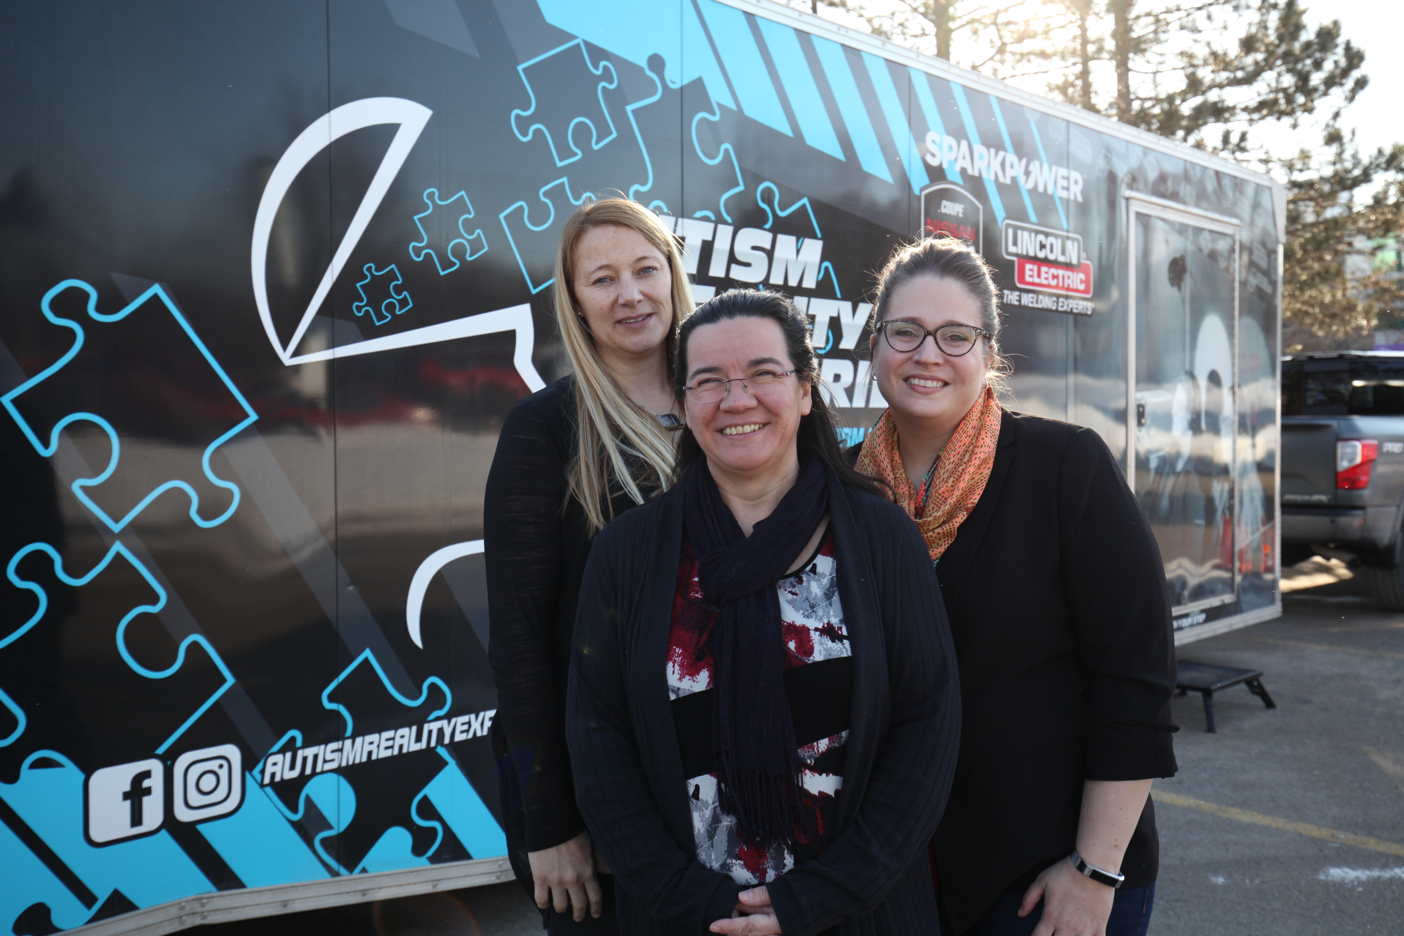 (Left to right): Child and Youth Care program coordinator Heather Sago; Developmental Services Worker program coordinator Ann Hines; and Professor, Simulation & Interprofessional Education Lead Wendy Morgan.